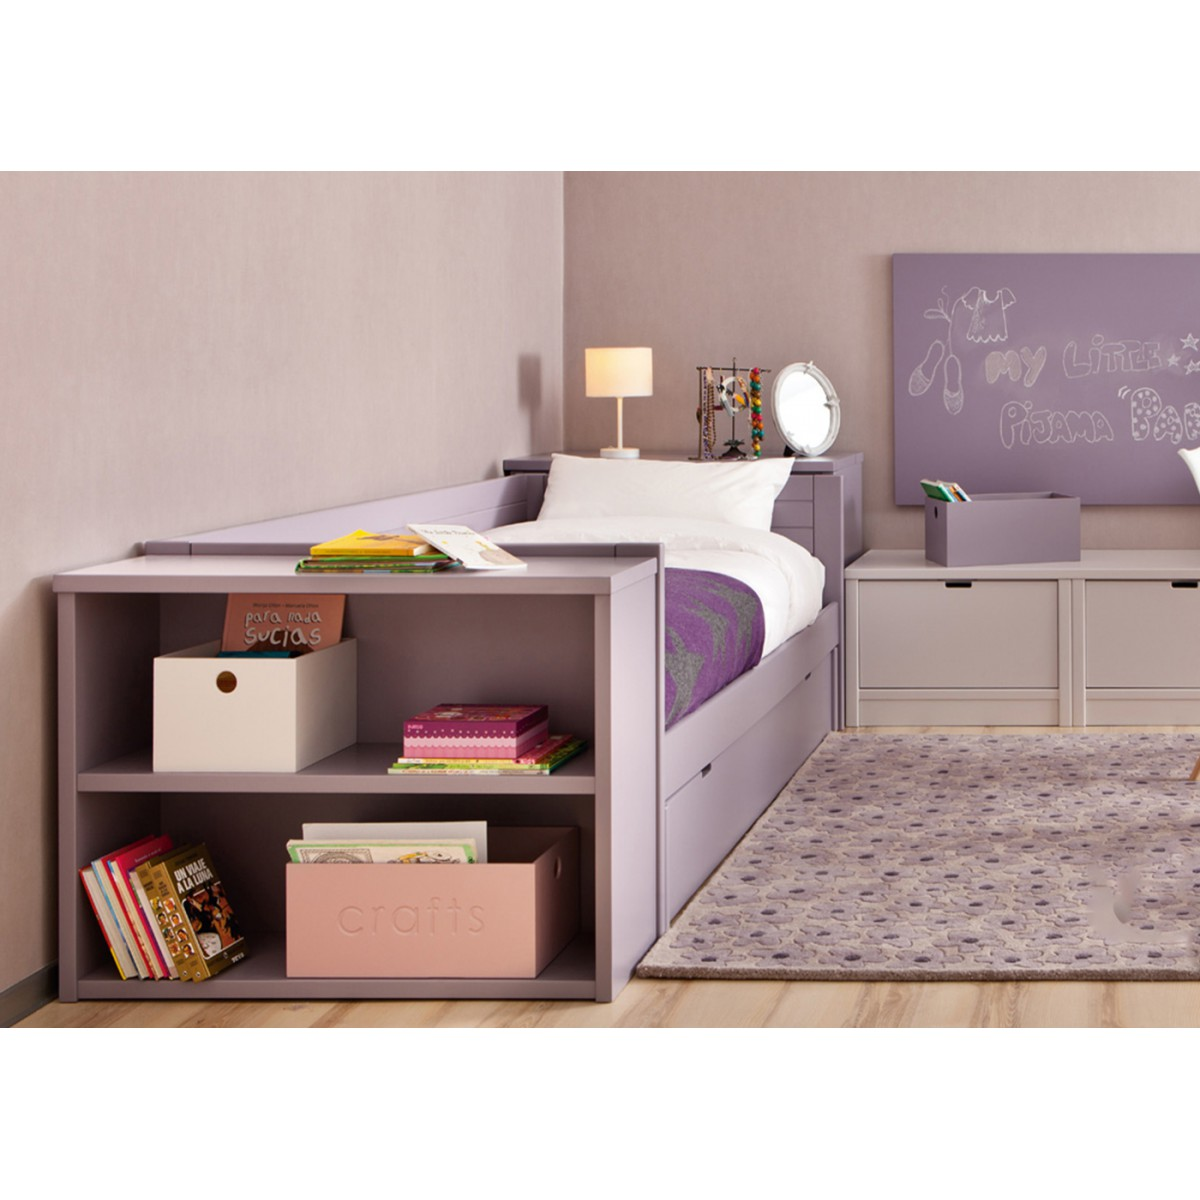 banquette lit qualité with Chambre  Plete Junior Avec Lit Rangement Et Bureau Asoral 2068 on Chambre  plete Junior Avec Lit Rangement Et Bureau Asoral 2068 in addition Meubles 74 furthermore F 117635205 Auc4250525311235 likewise Lit Escamotable together with Lit Jeune Urbaine.